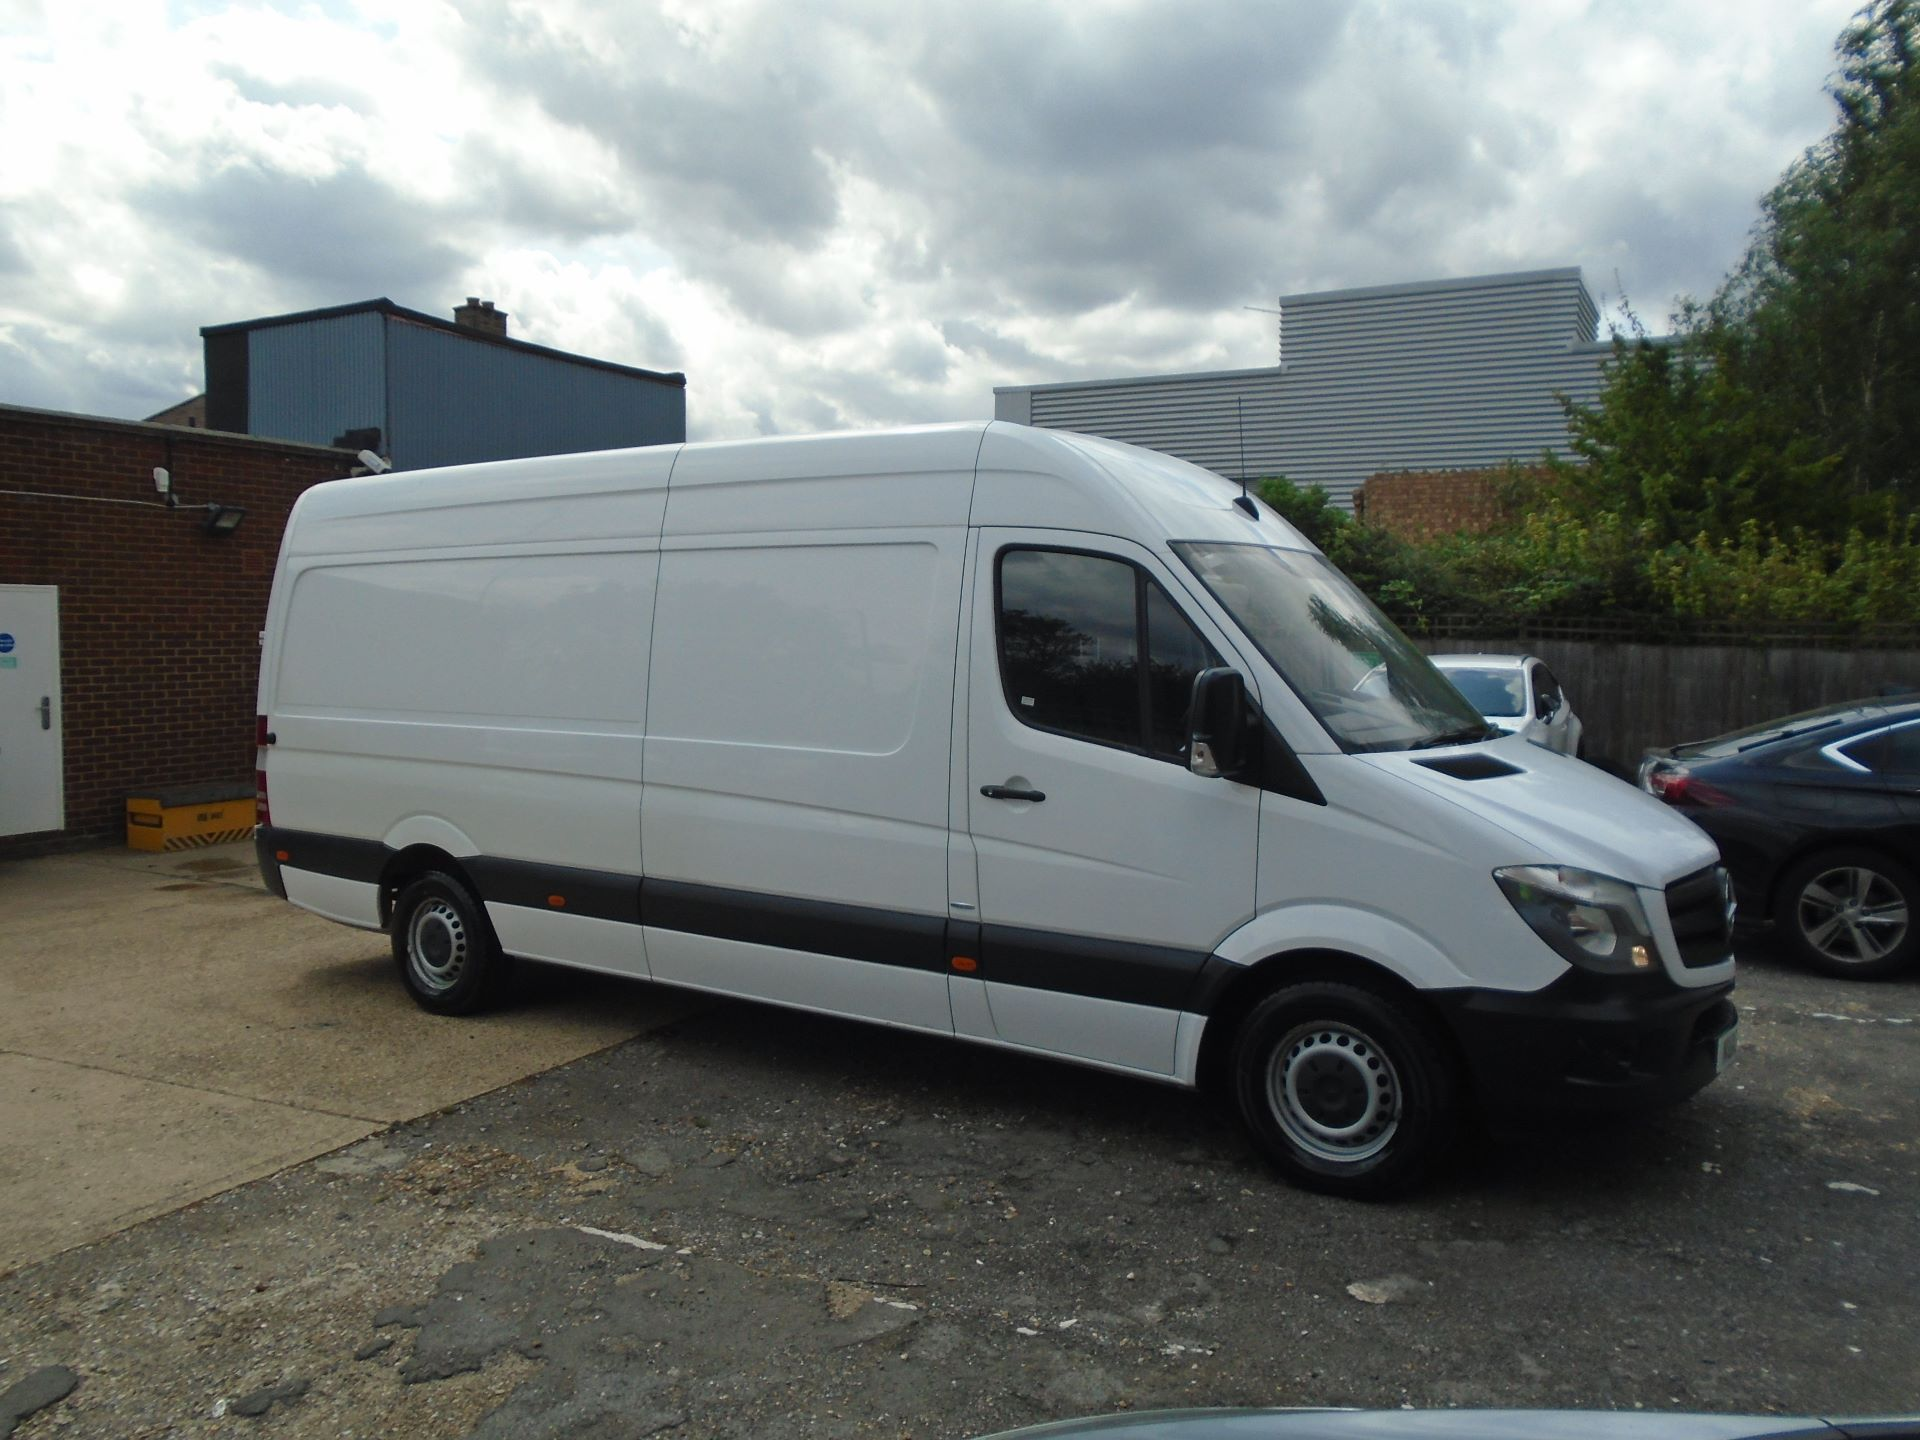 2016 Mercedes-Benz Sprinter 3.5T High Roof Van EURO 5 (KU16MXH) Thumbnail 1